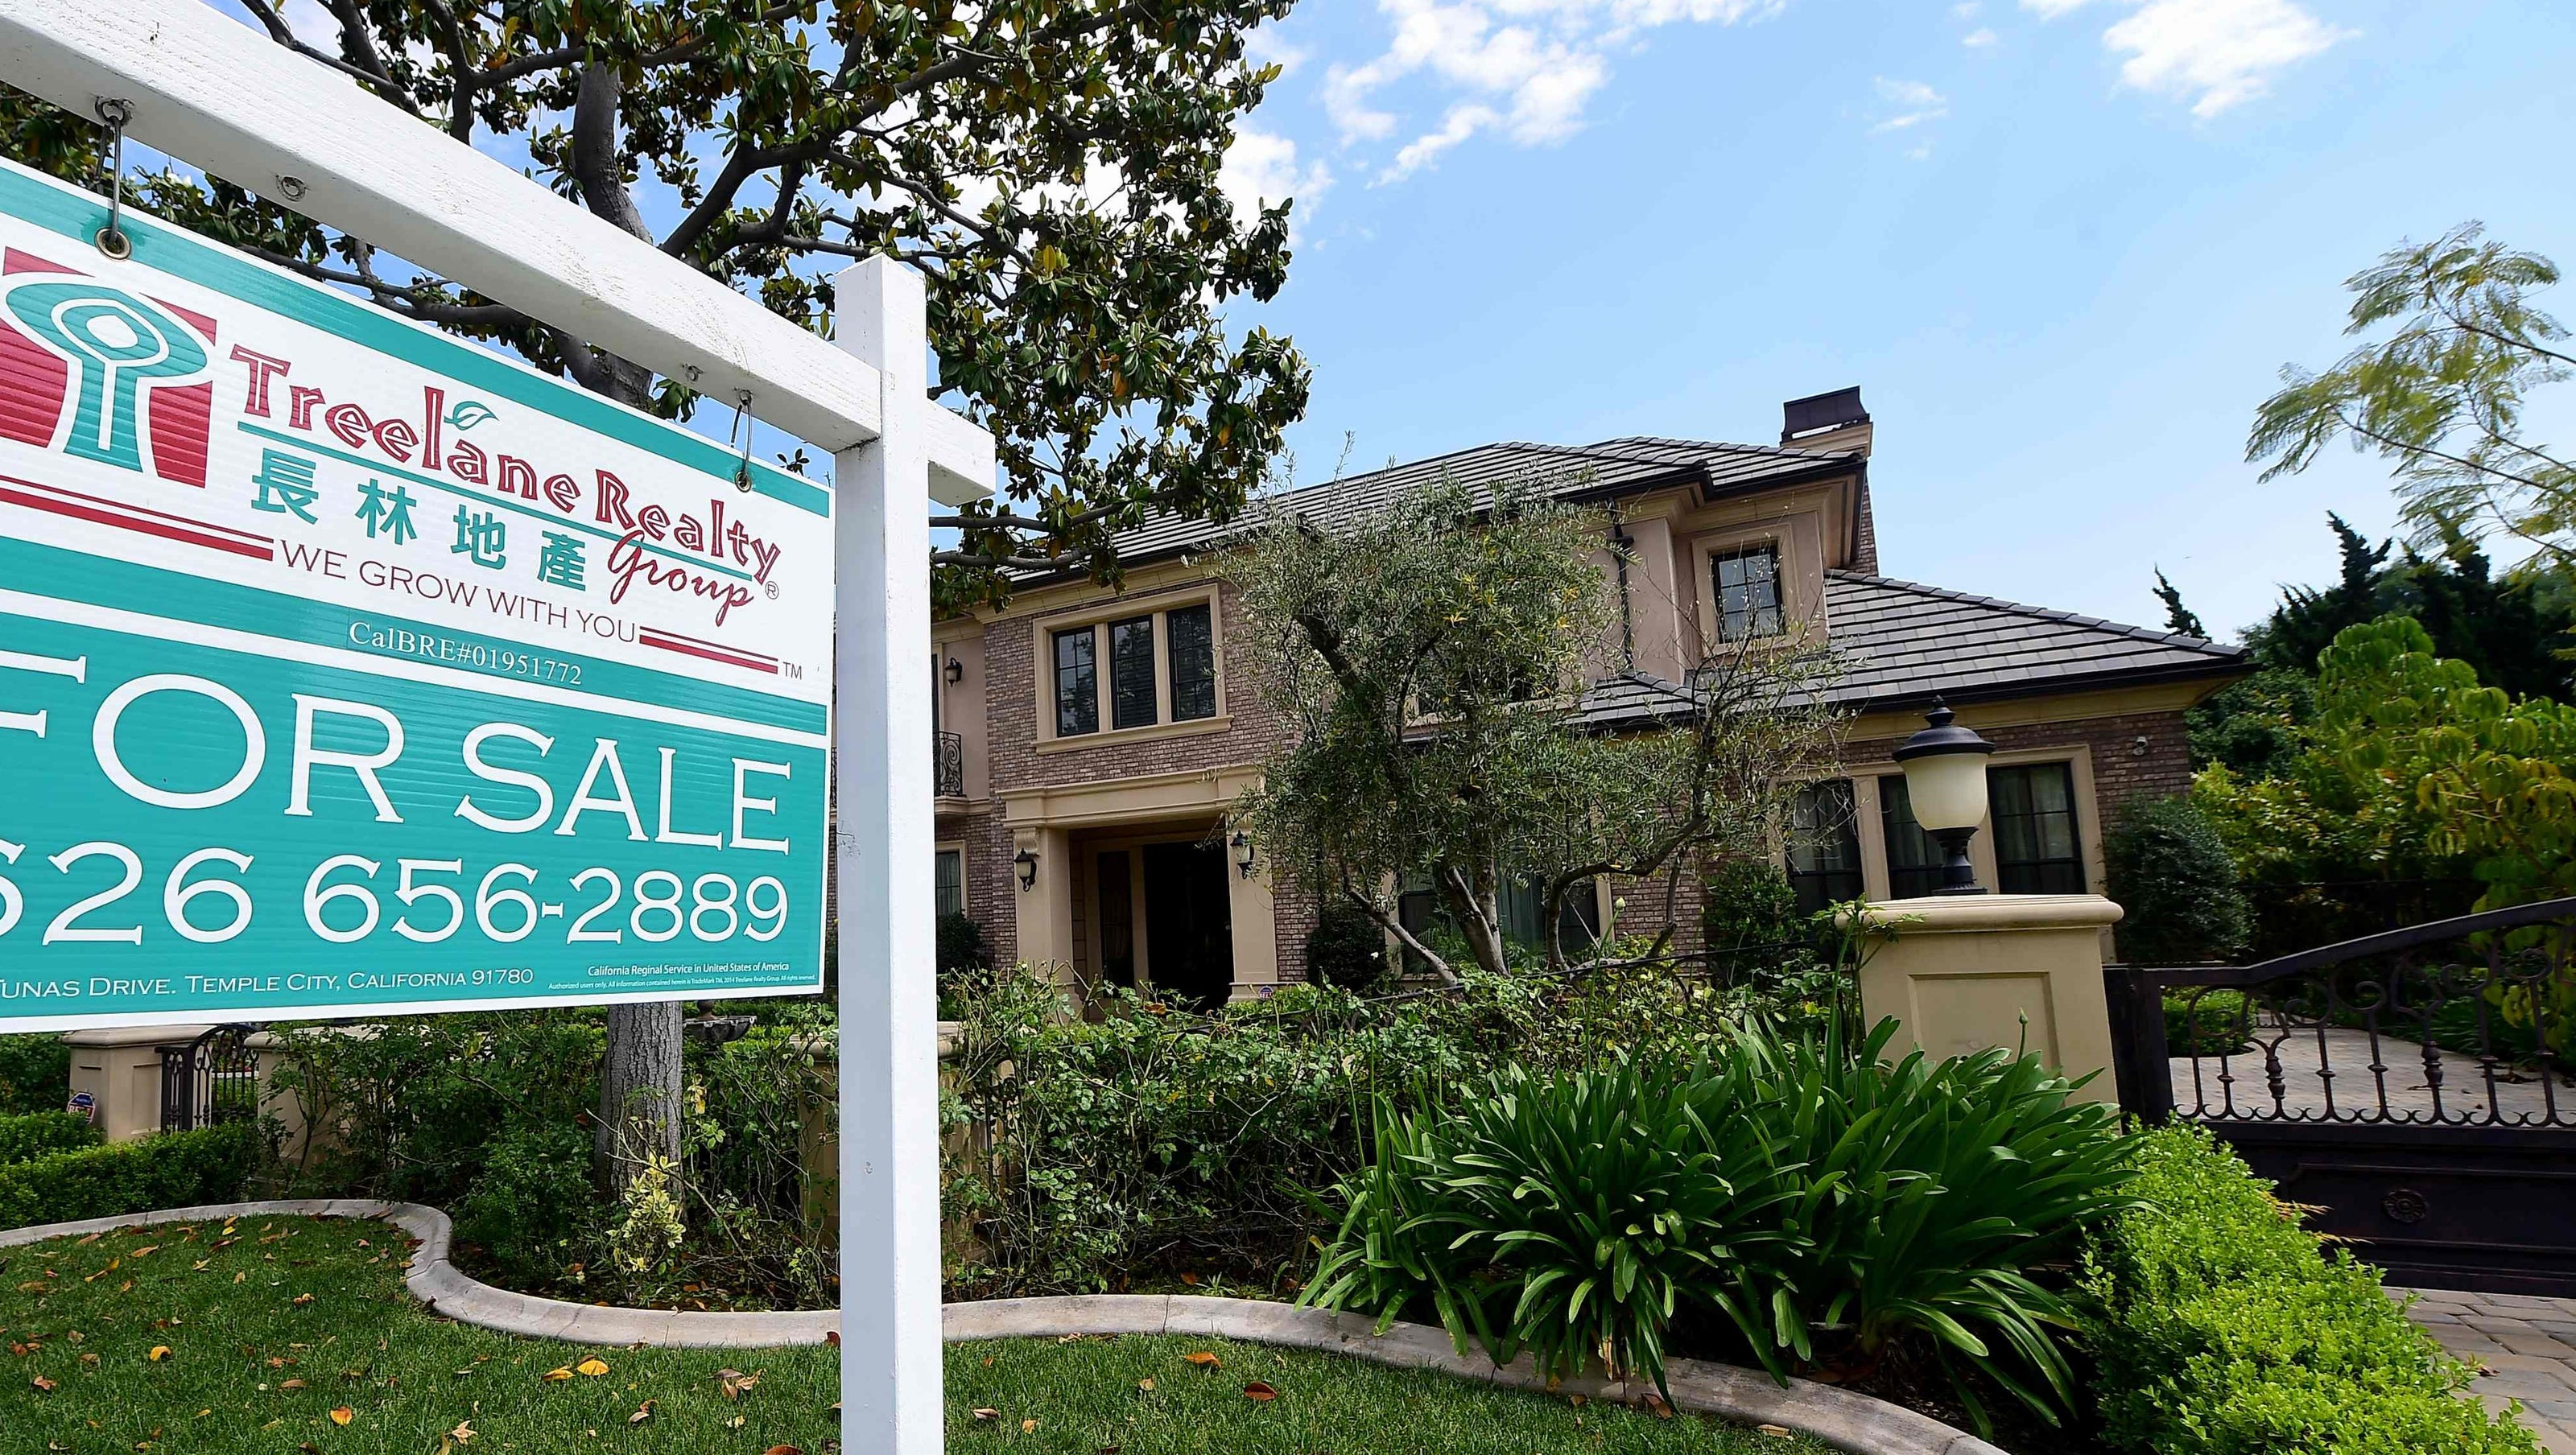 2Nd Best Mortgage Rate